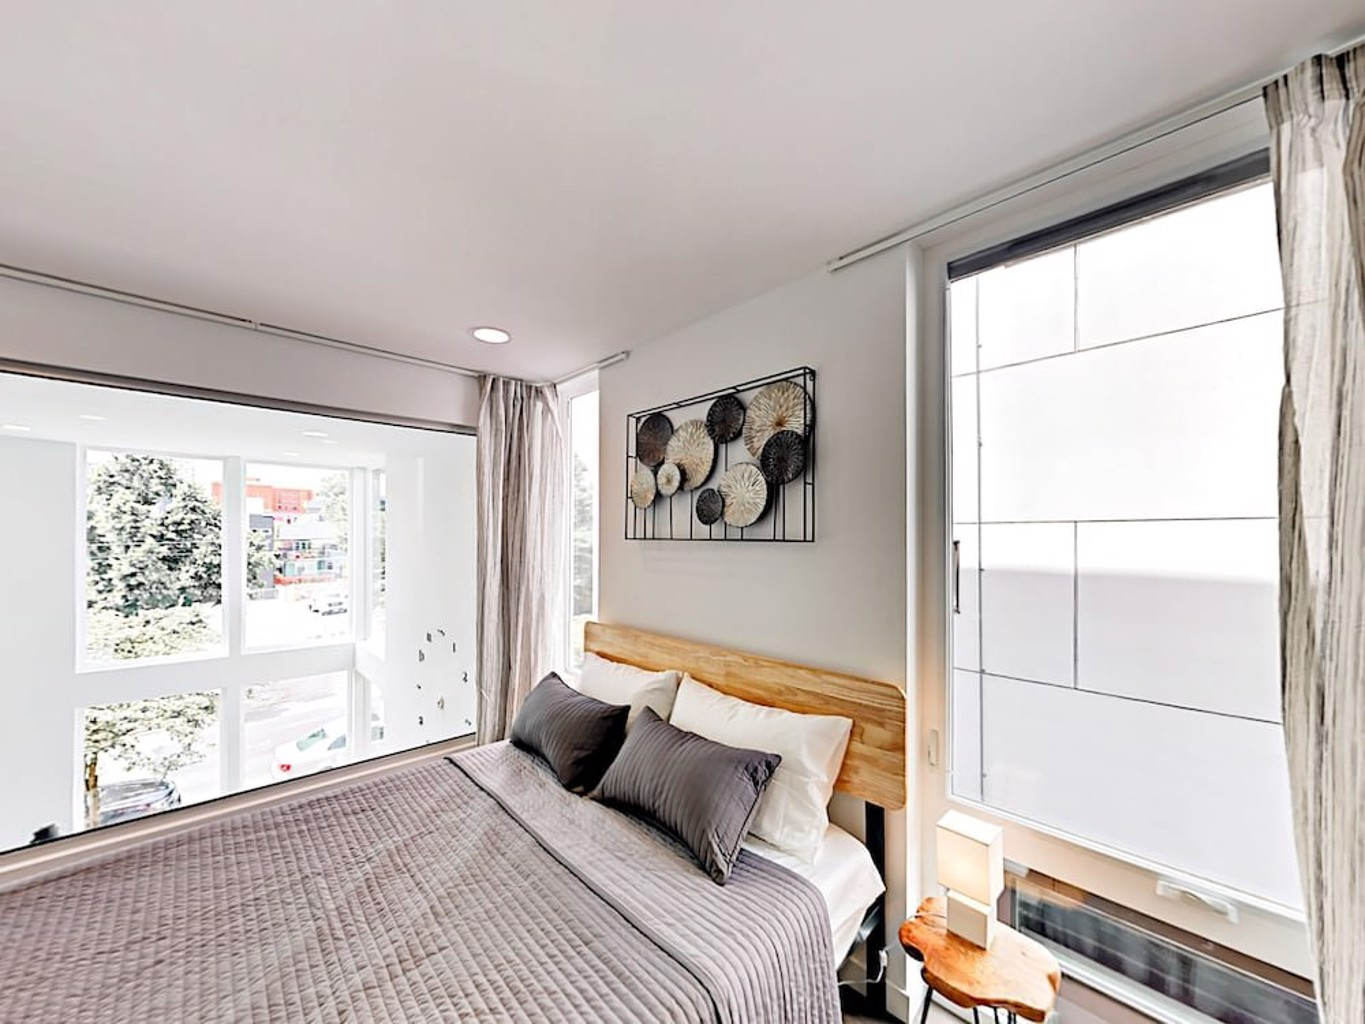 3br W Rooftop Patio On Capitol Hill 3 Bedroom Townhouse